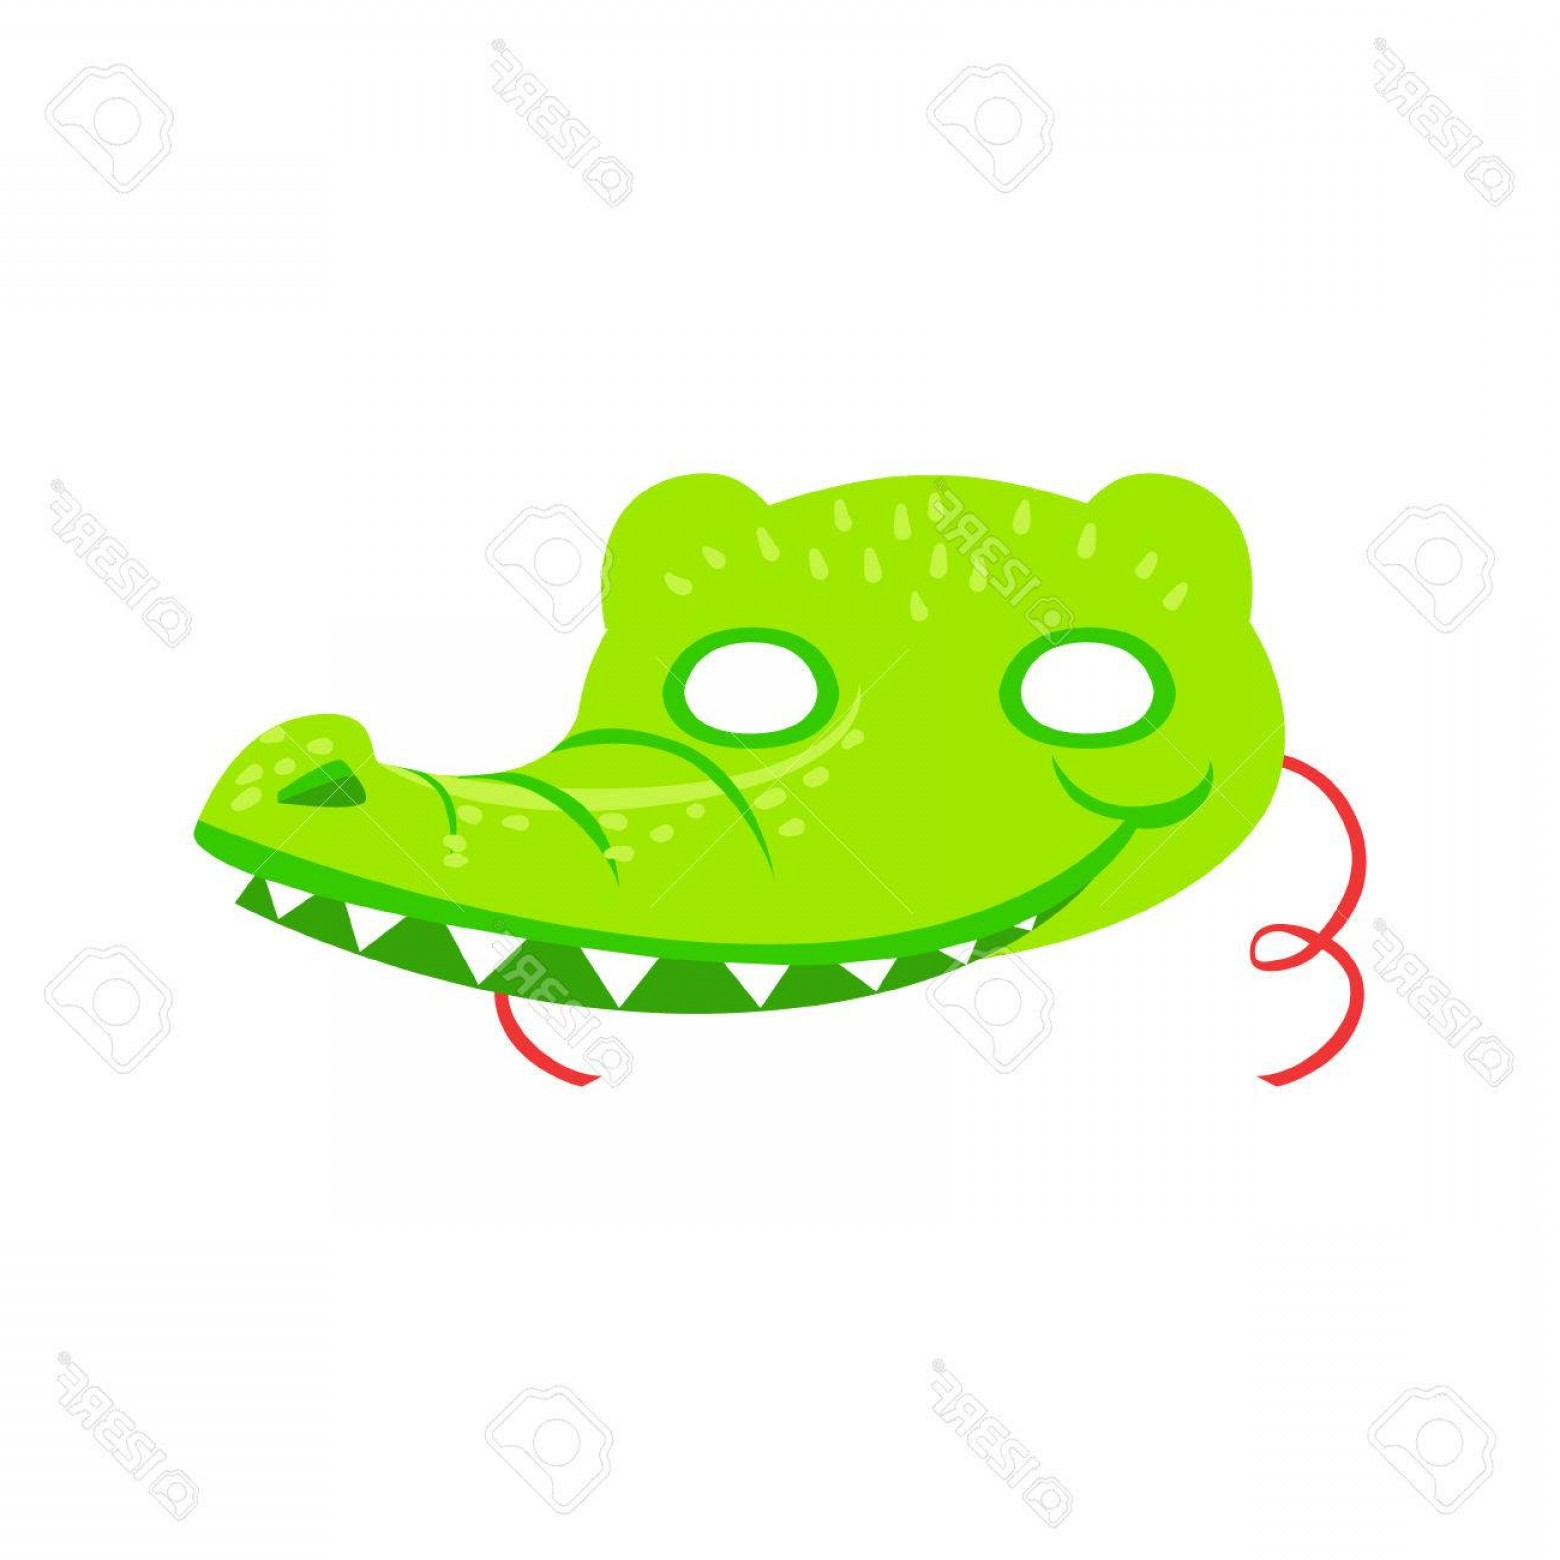 Vector The Crocodile Costume: Photostock Vector Crocodile Animal Head Mask Kids Carnival Disguise Costume Element